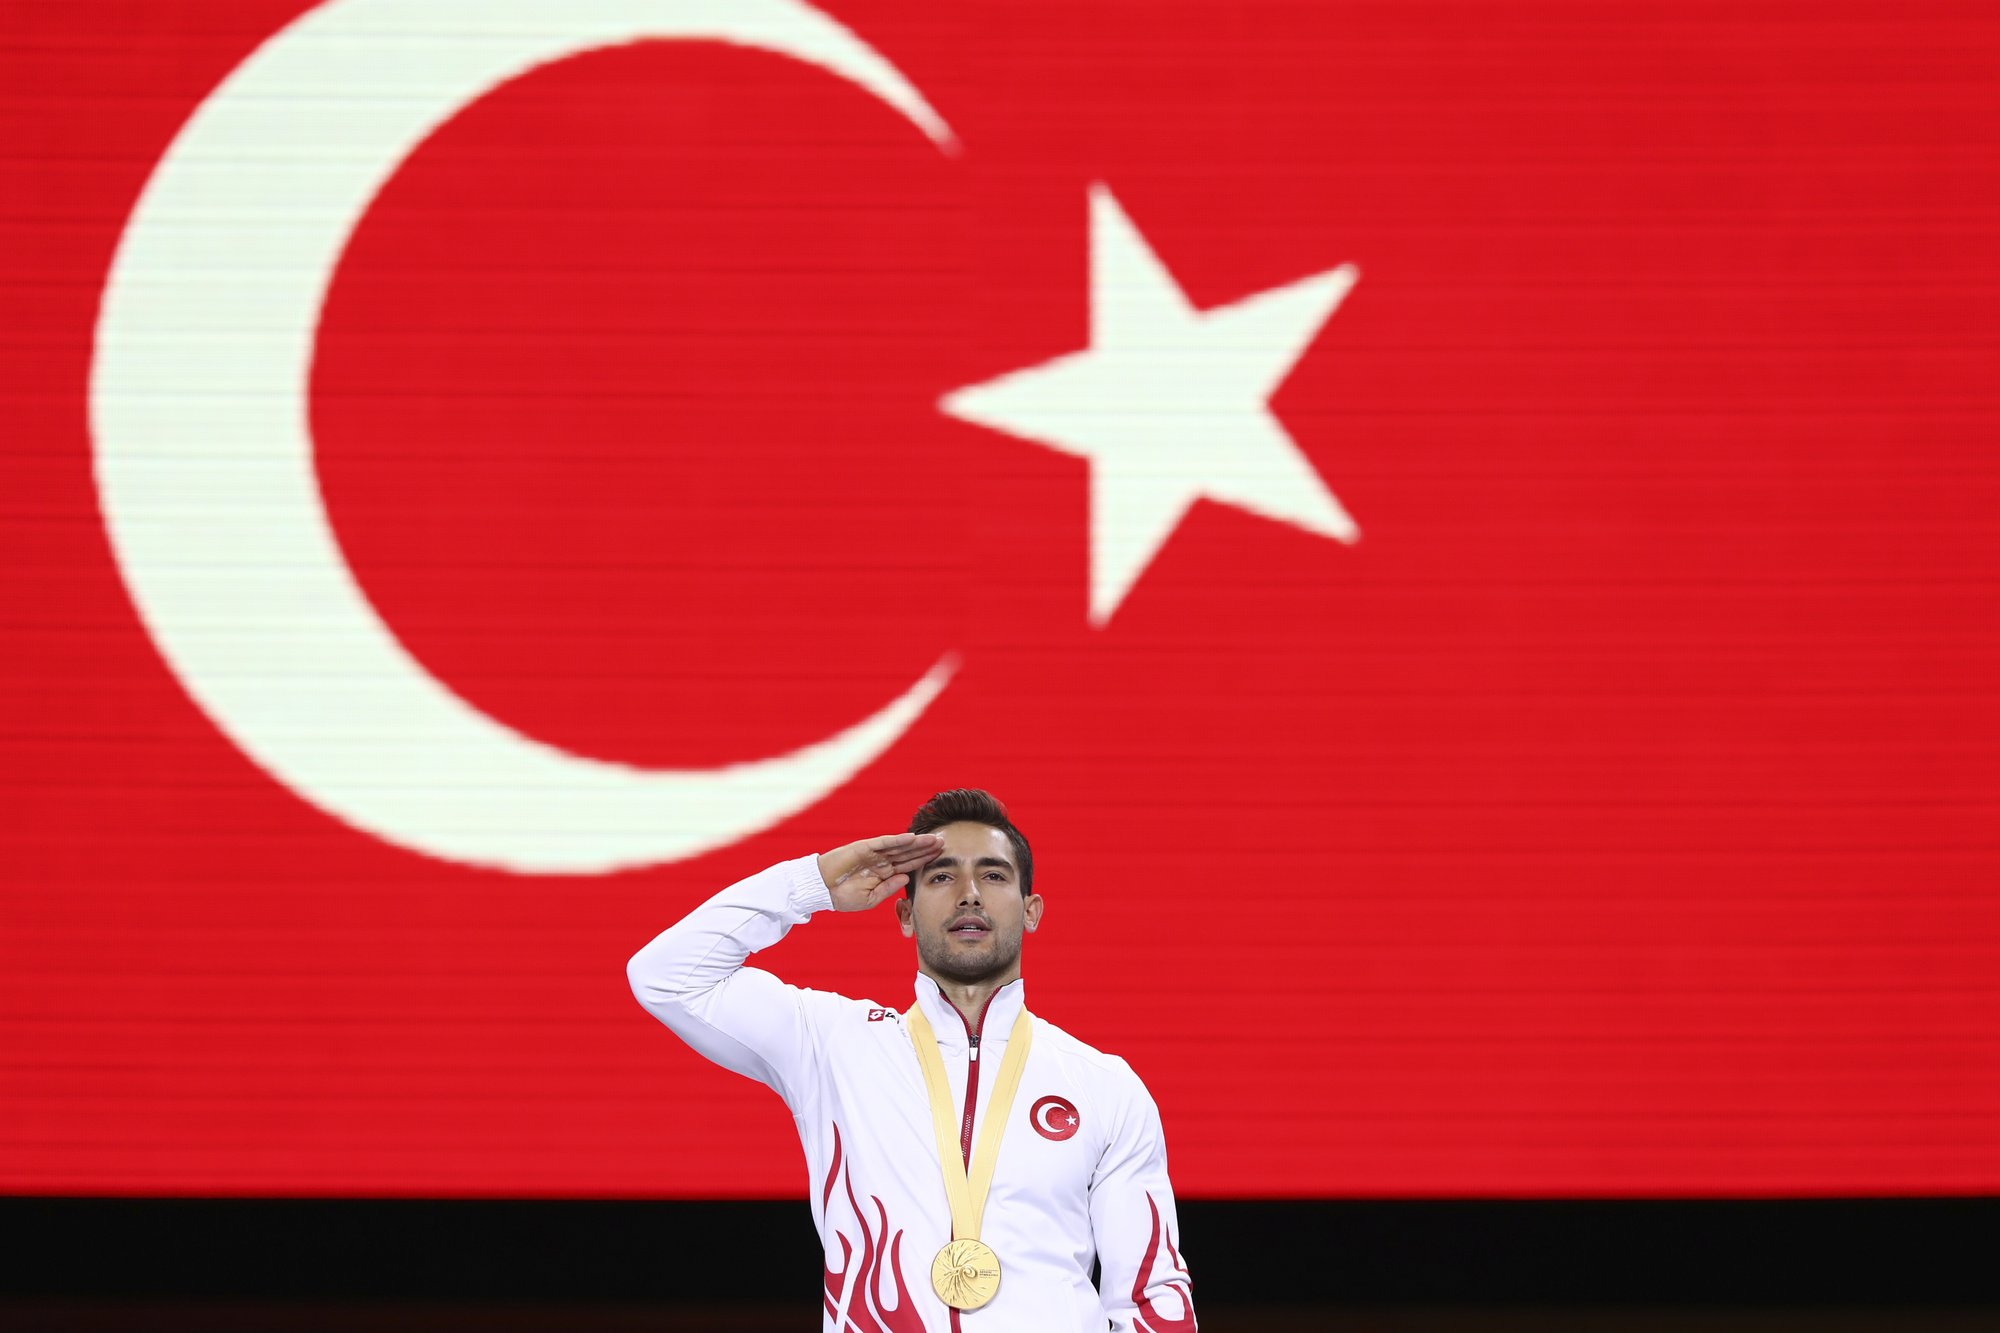 Turkish gymnast's salute could prompt rule change